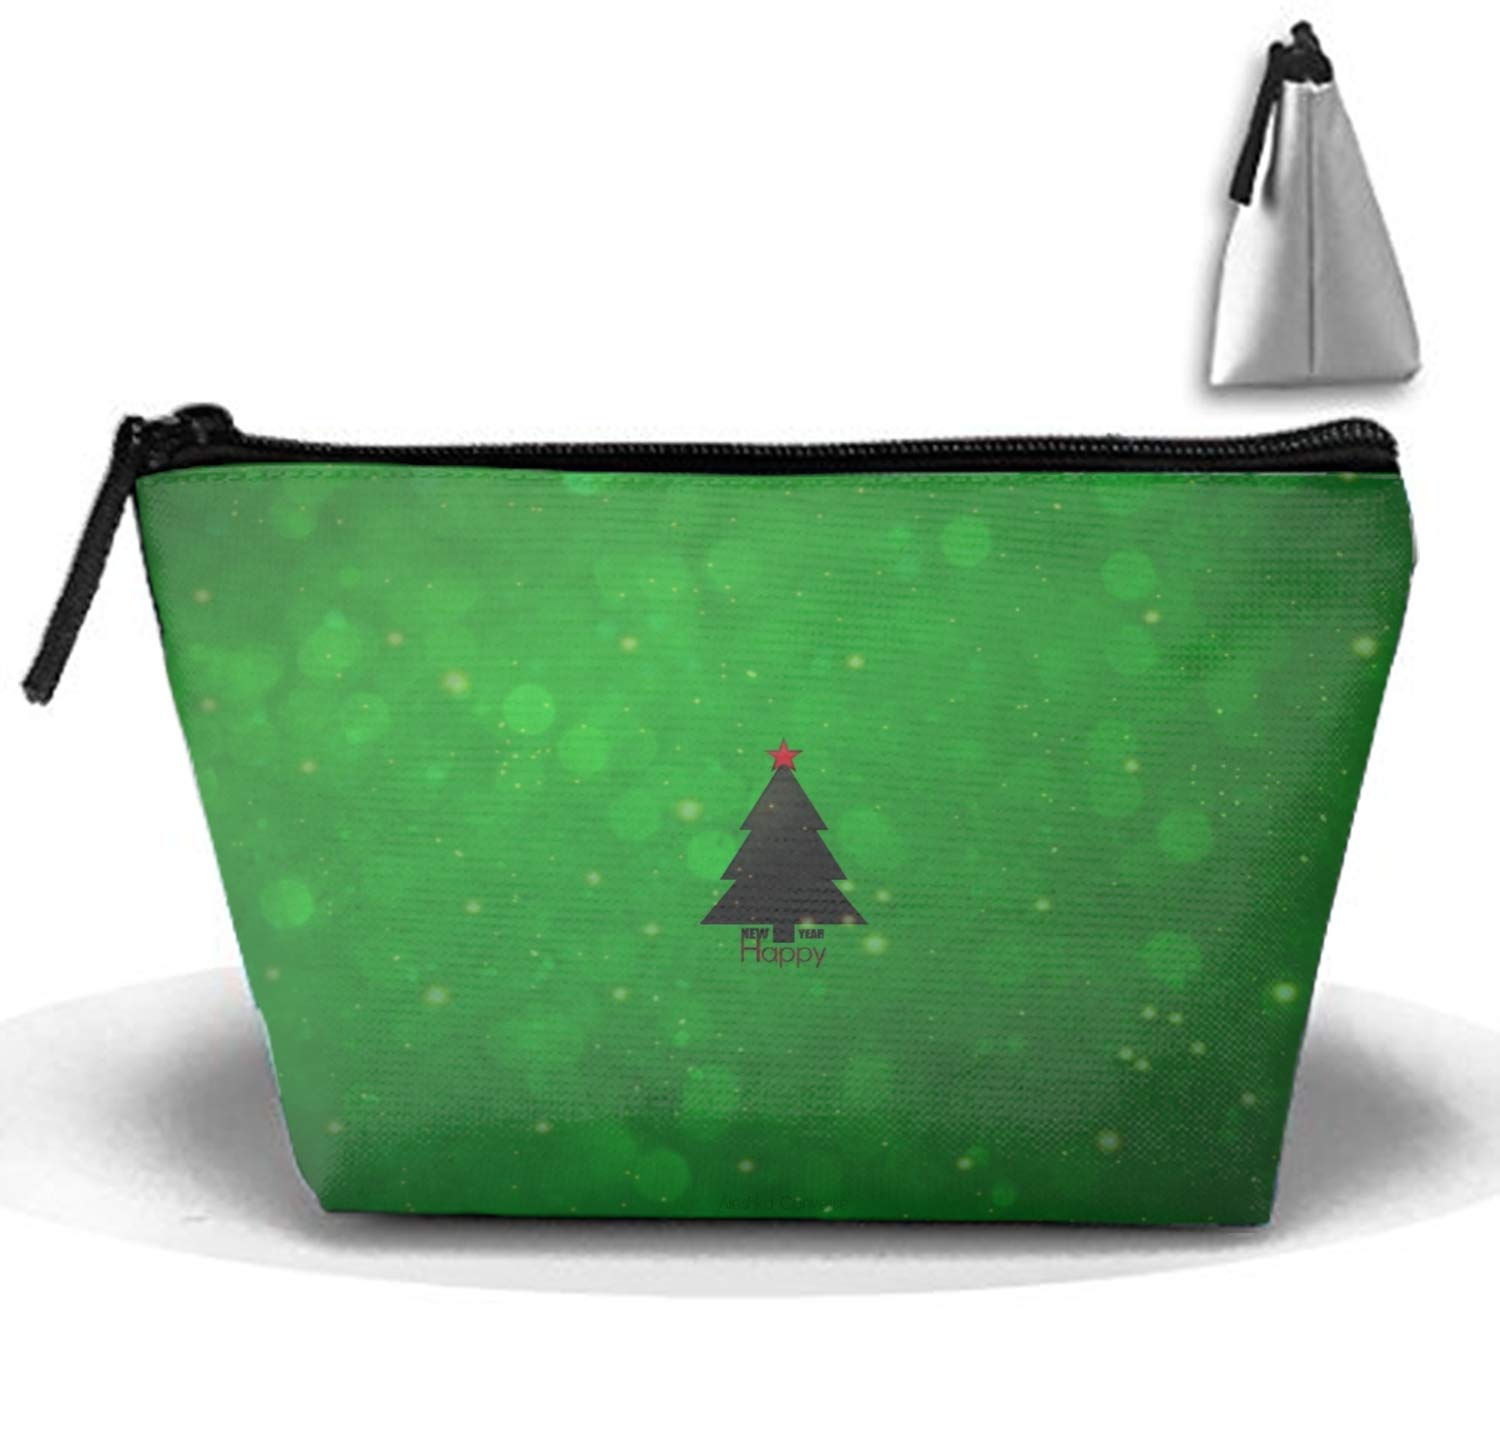 1ce7b0b25ef7 Amazon.com : Christmas Tree Ornaments Cosmetic travel Bag ...